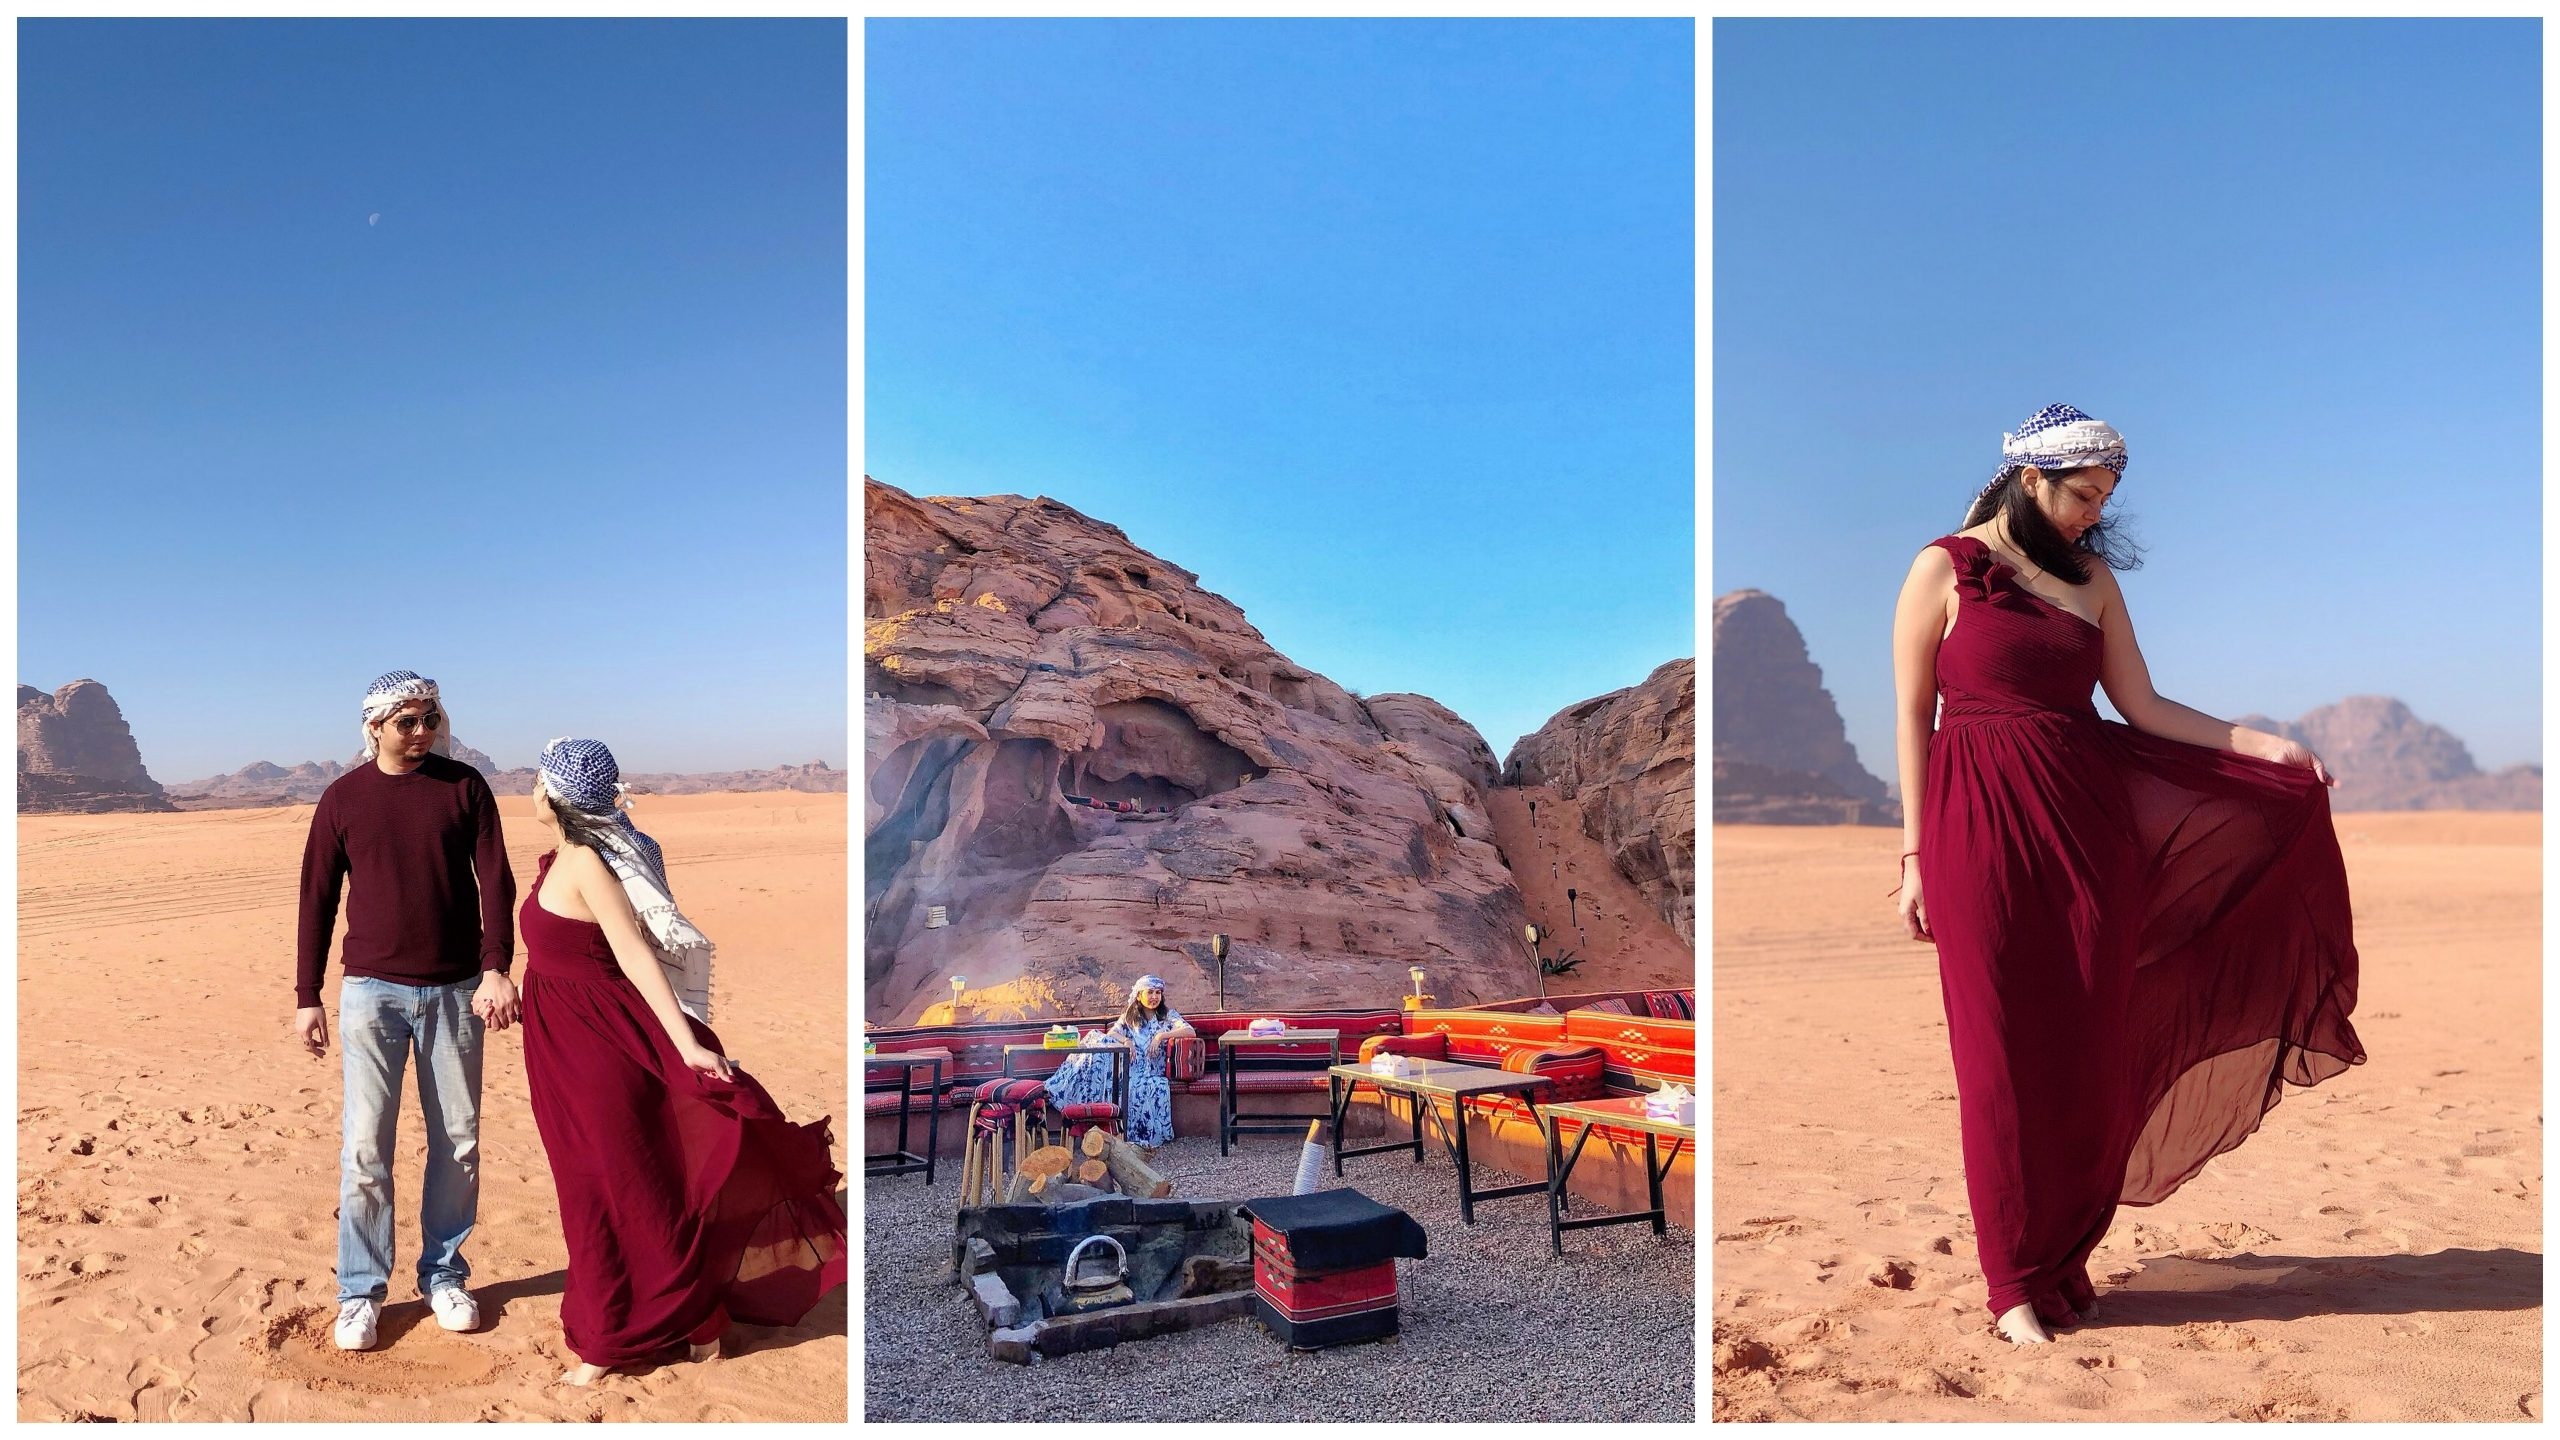 Jordan Road Trip Itinerary - Stay at Wadi Rum